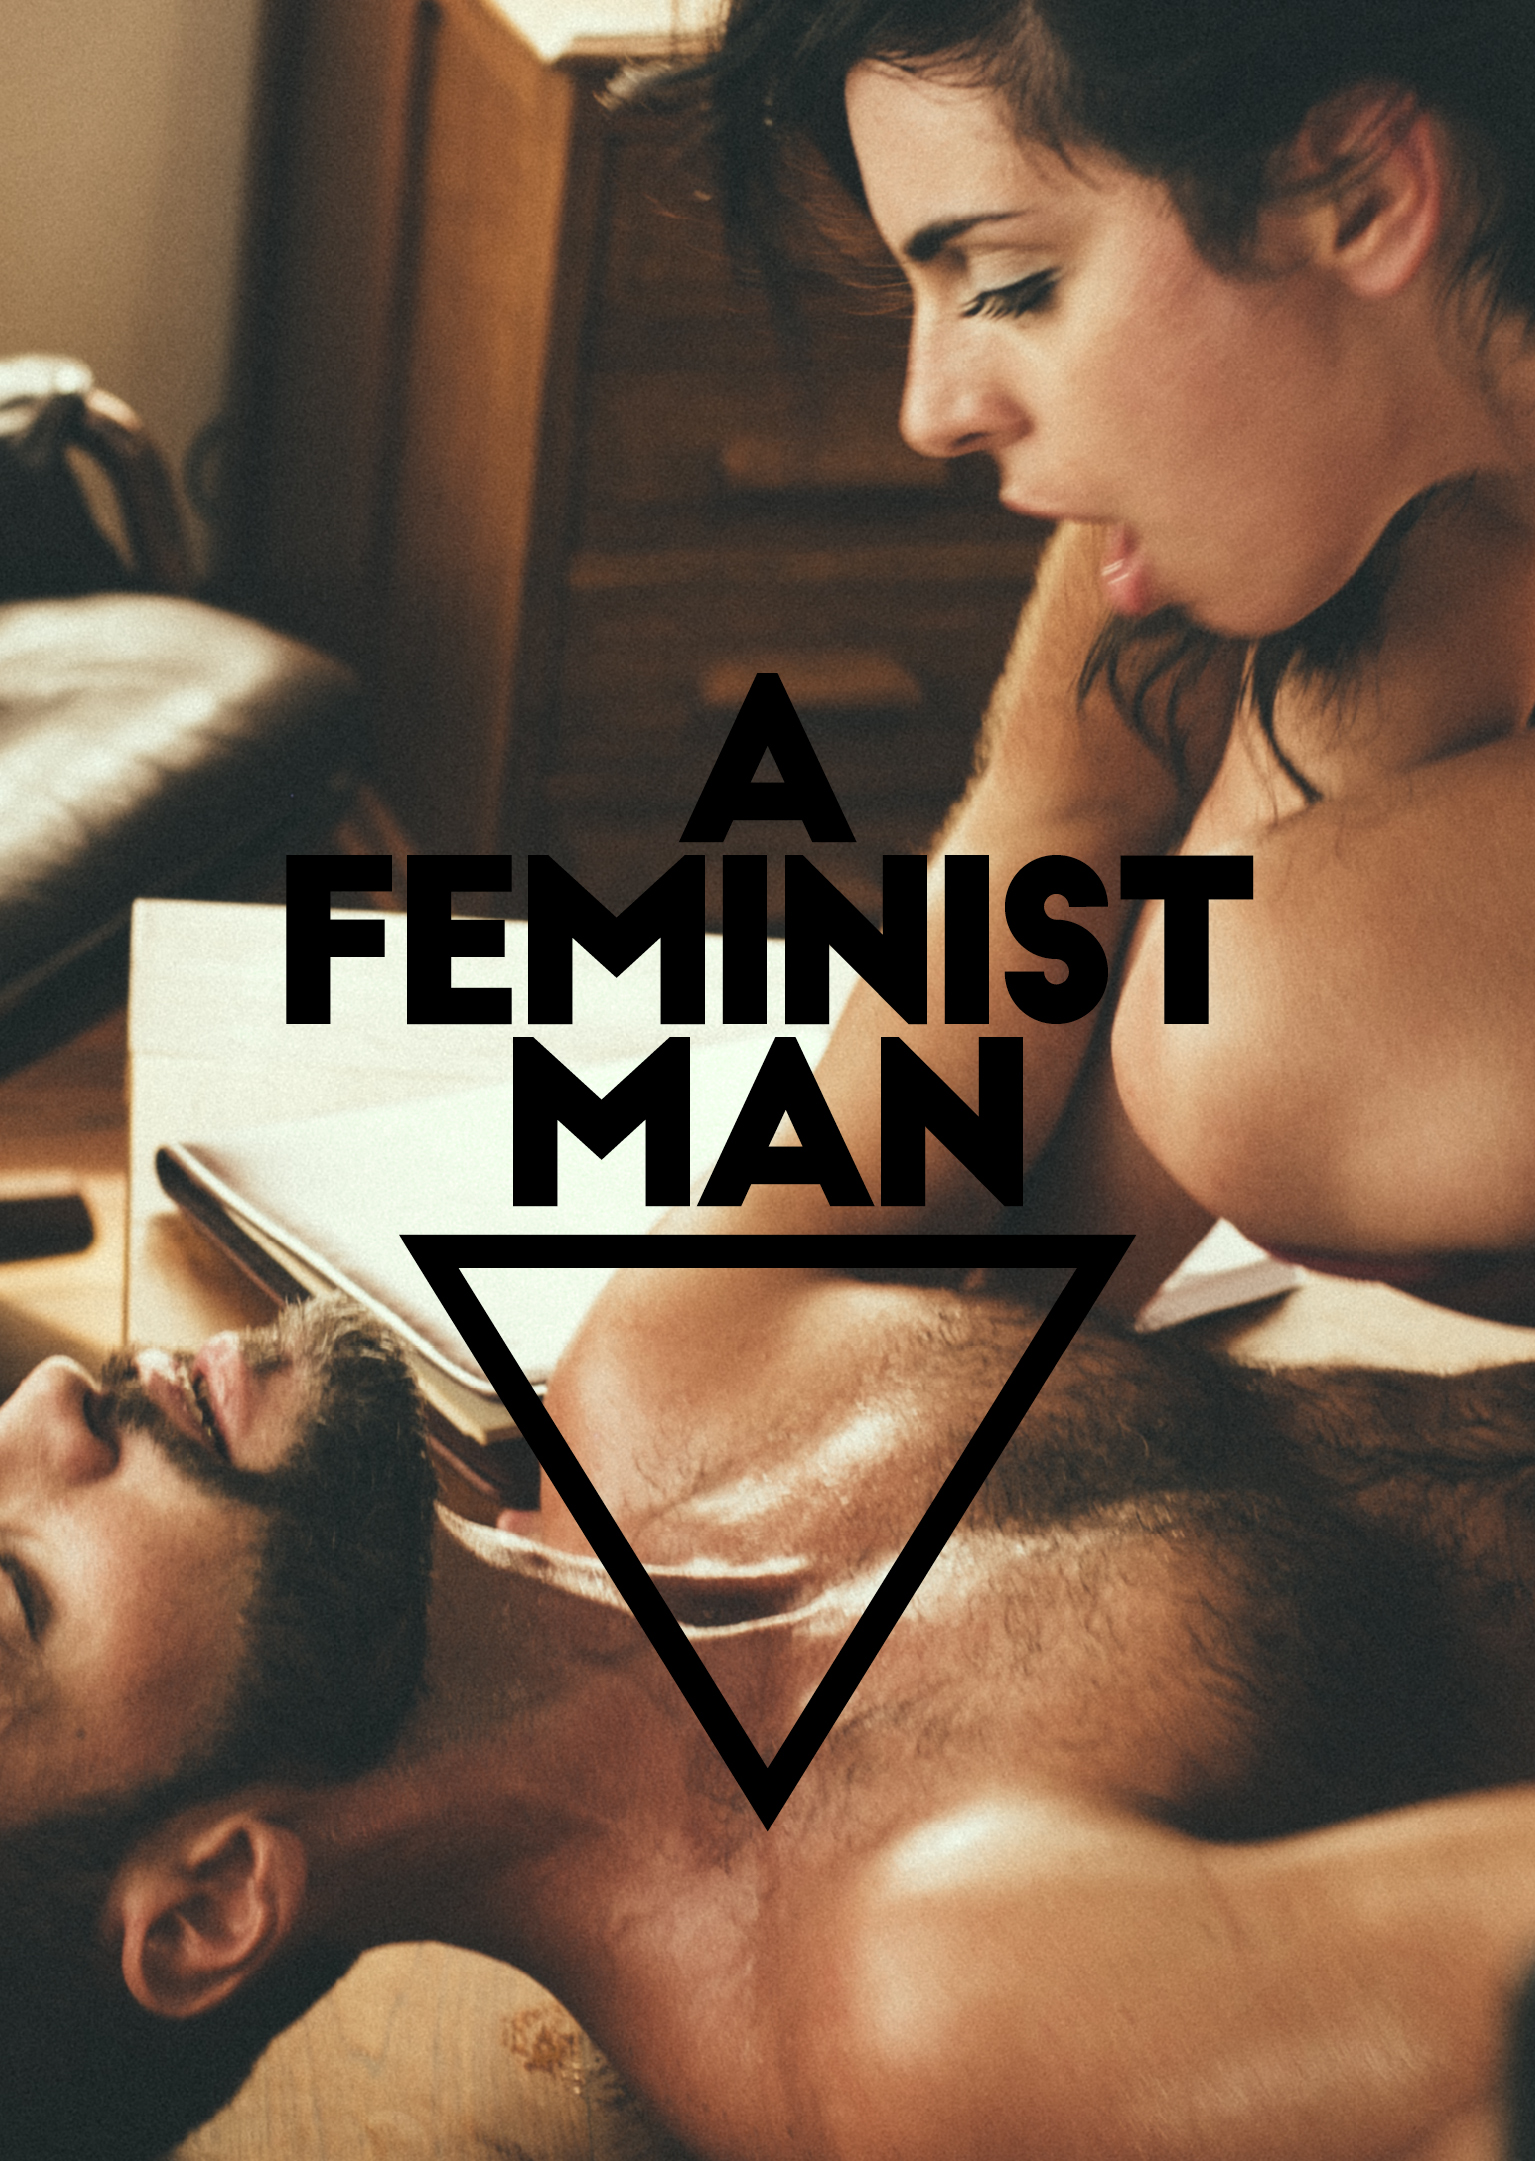 Xconfessions By Erika Lust, A Feminist Man